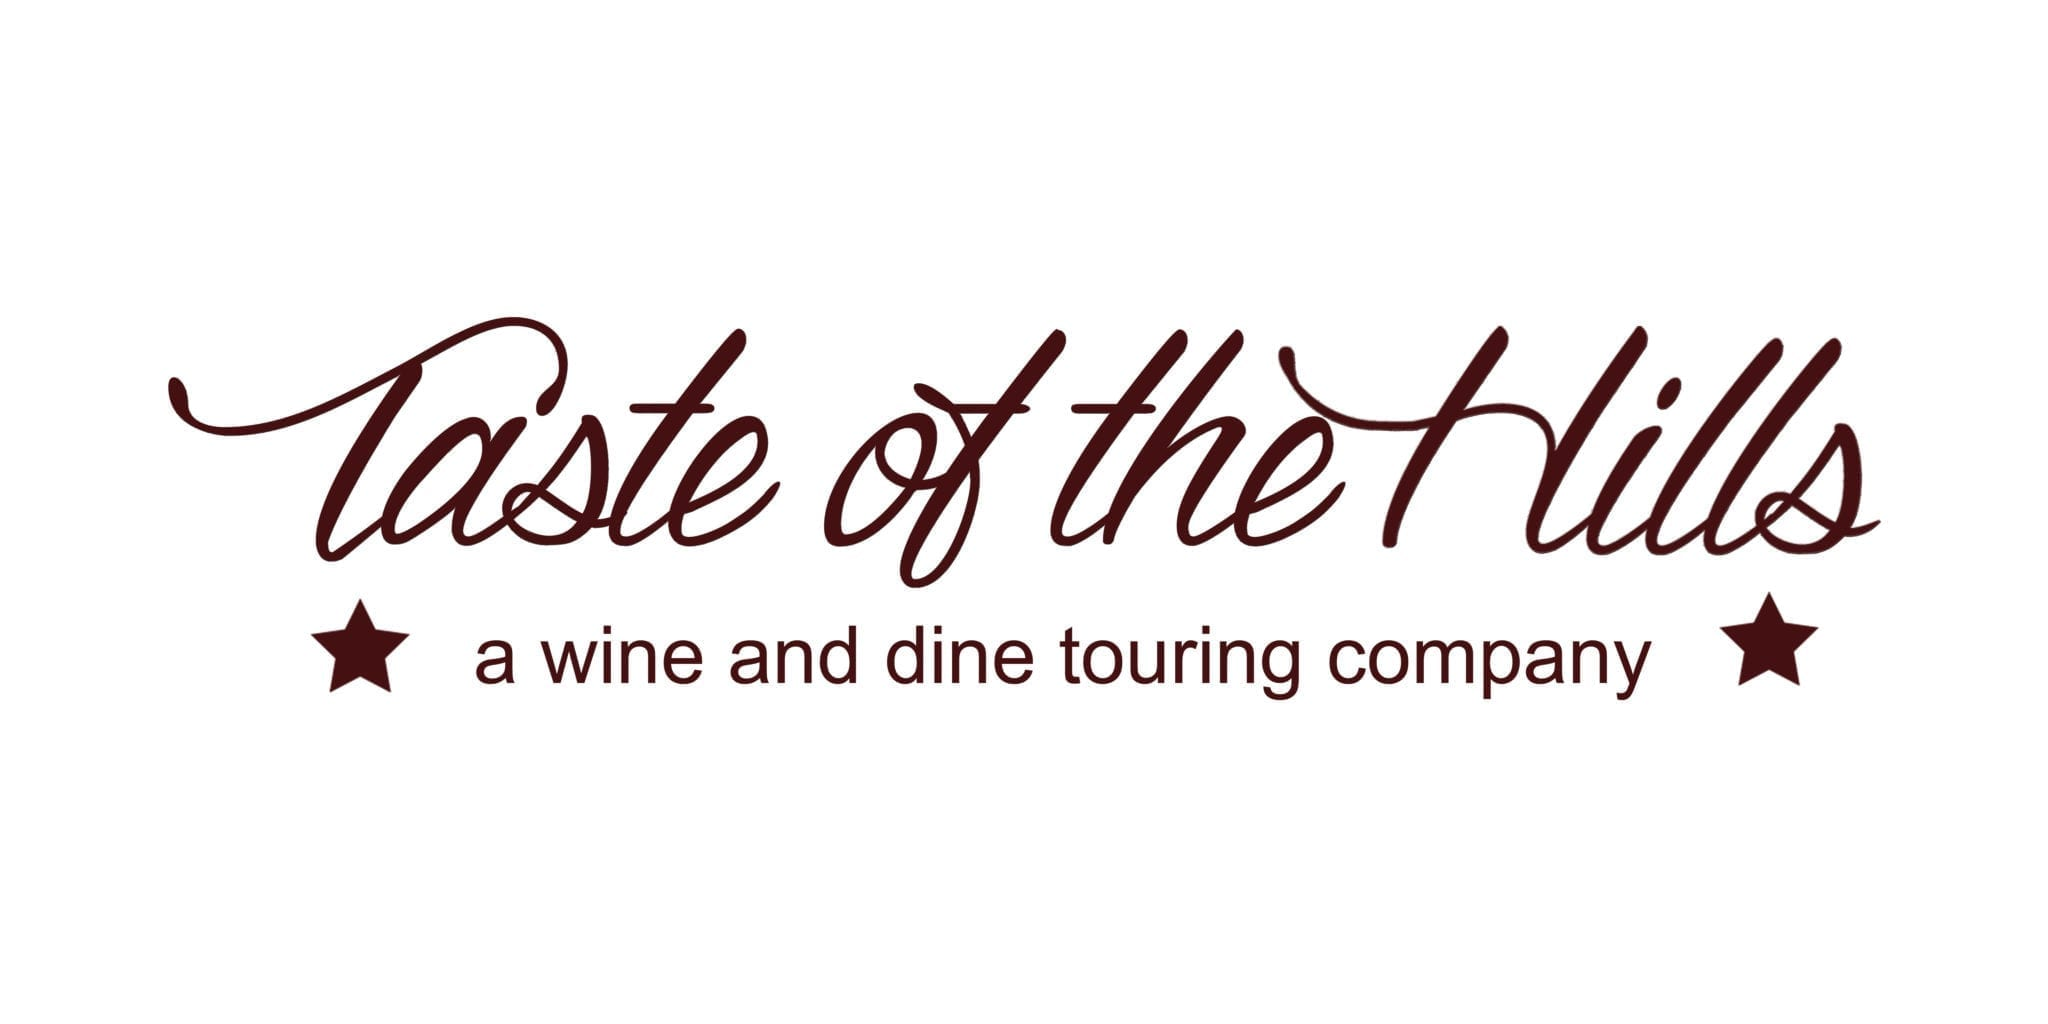 Taste of the Hills is Wimberley's finest wine tasting tour company. We visit the best wineries in the area and create an unforgettable experience. We offer public tours leaving from the Wimberley Valley Visitor Center as well as private tours for your group.